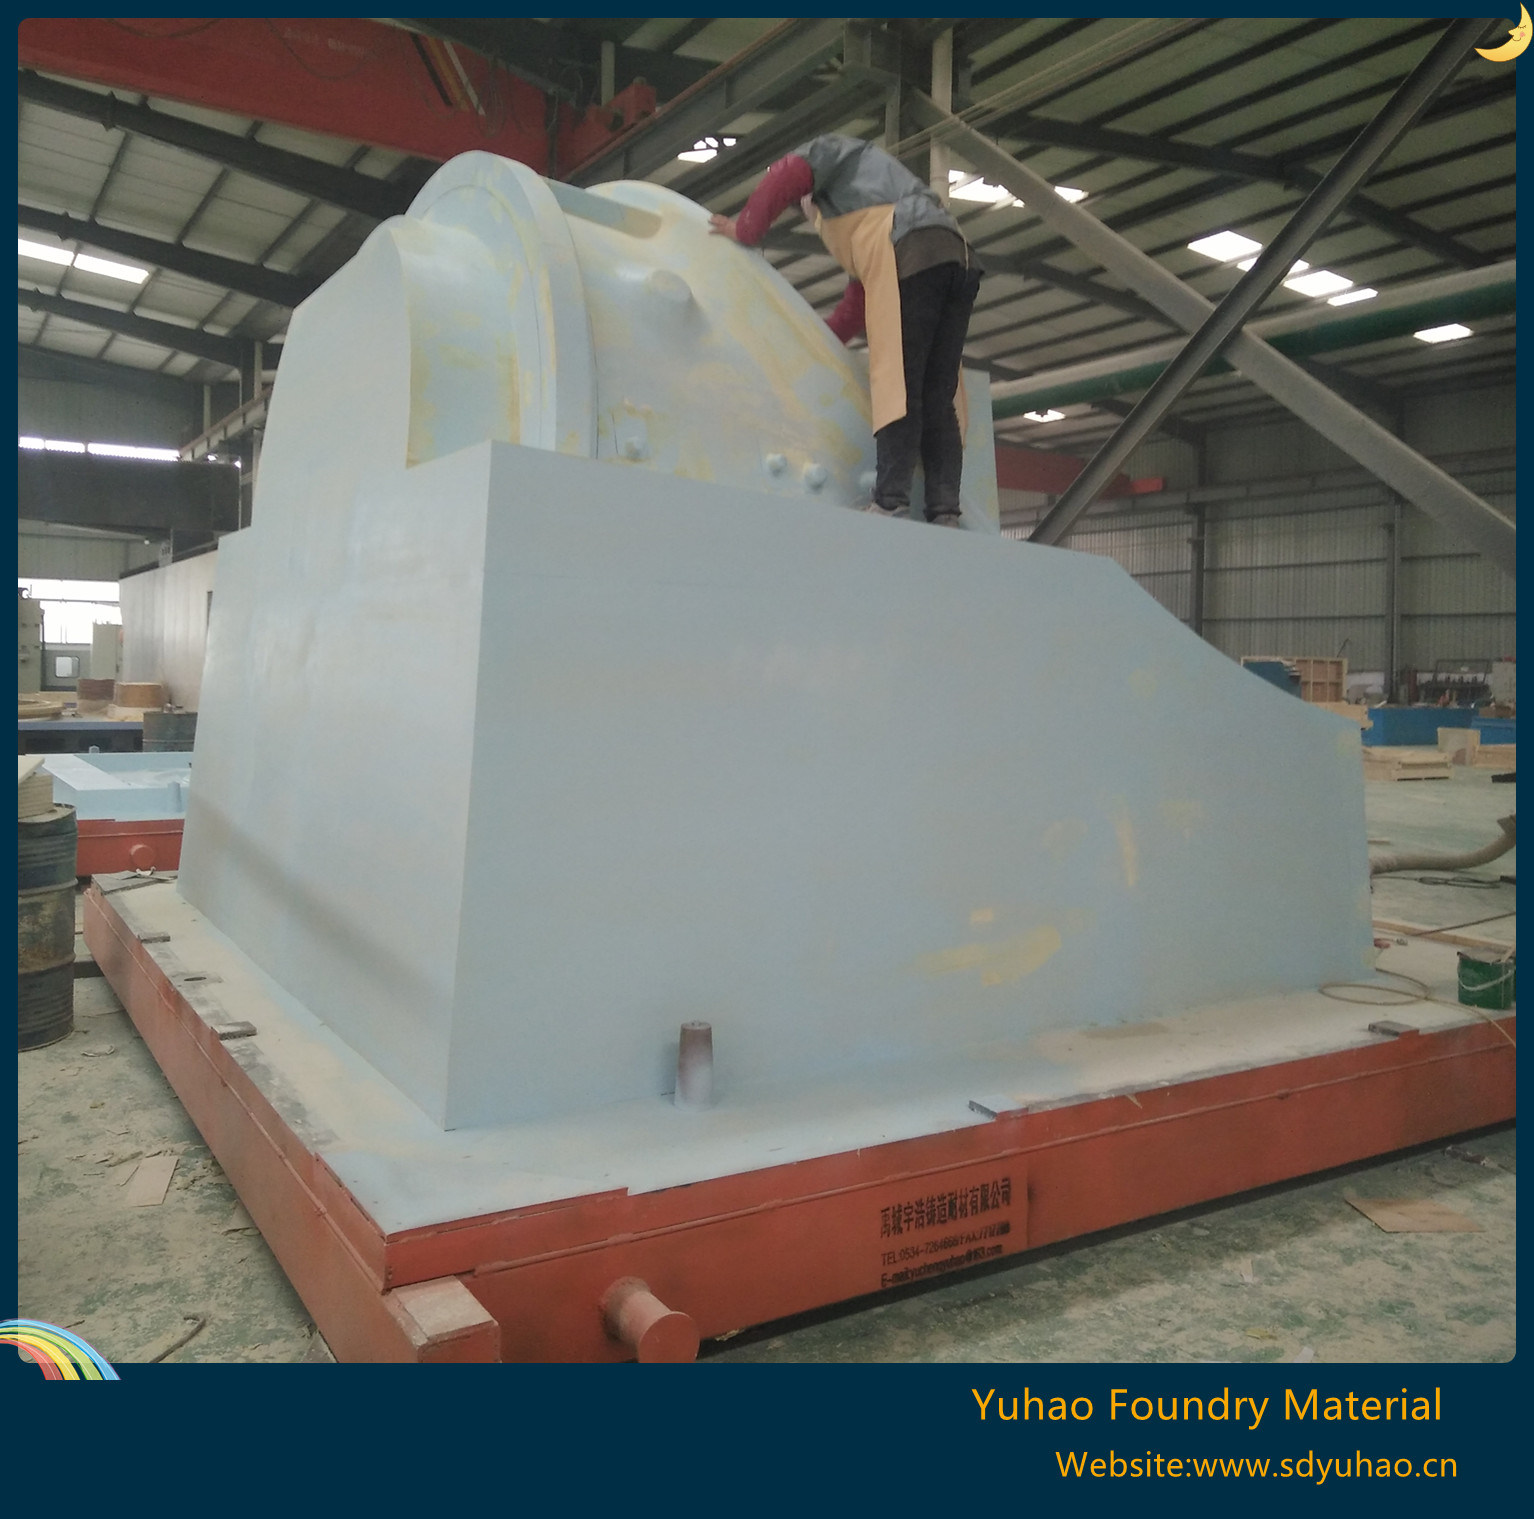 Wooden Casting Mould for Large Casting Parts